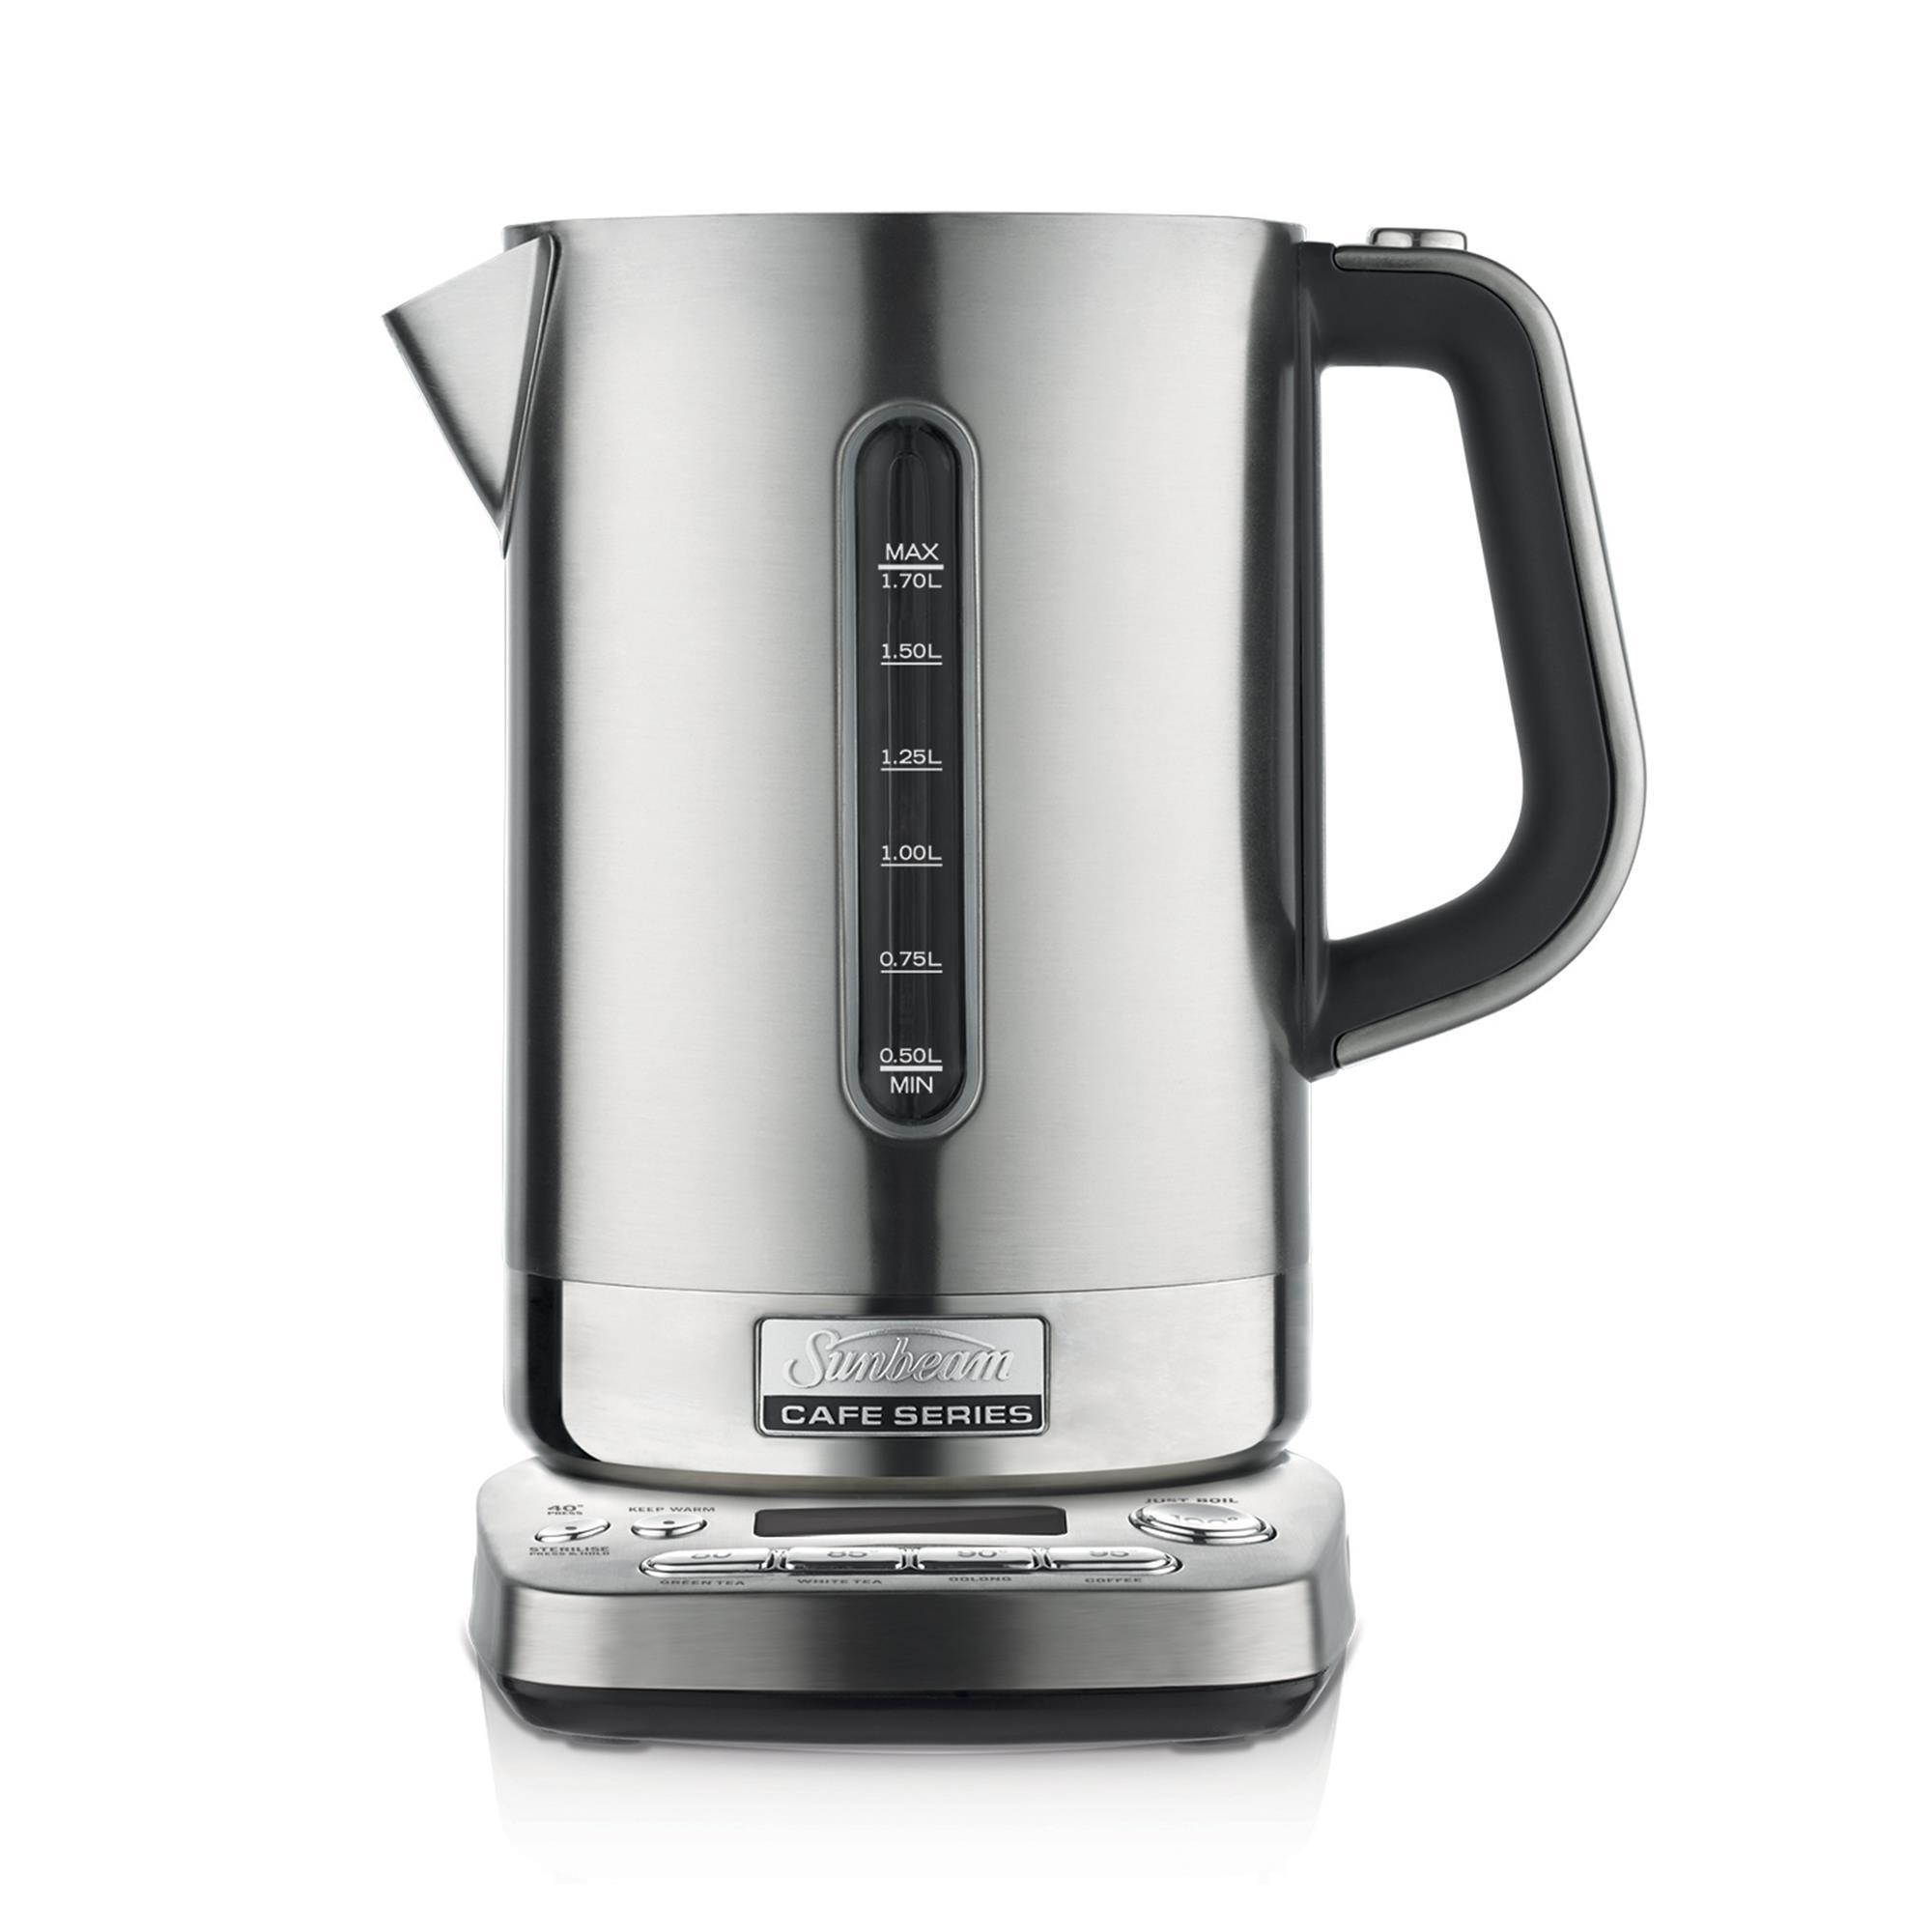 Sunbeam KE9650 Cafe Series QT Kettle